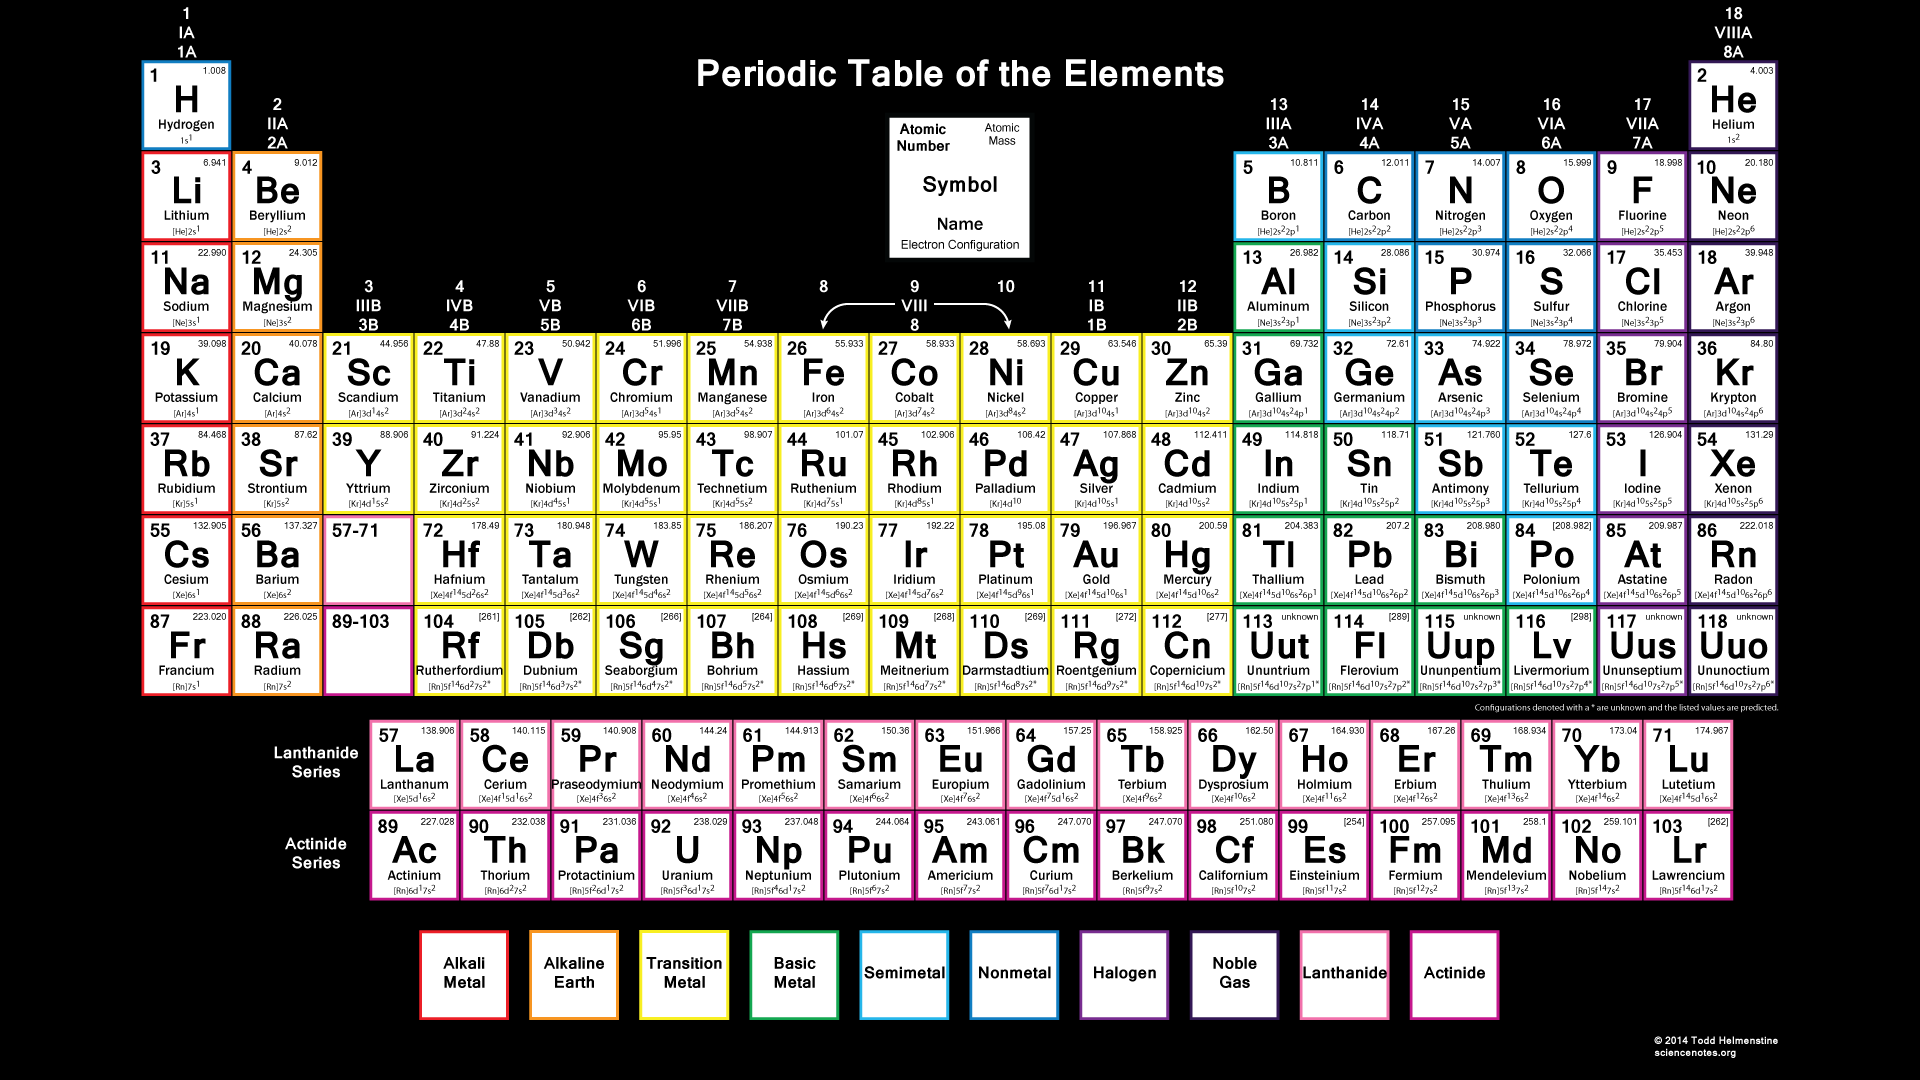 Periodic table with electron configuration stem physical periodic table with electron configuration stem physical science pinterest periodic table and physical science gamestrikefo Image collections